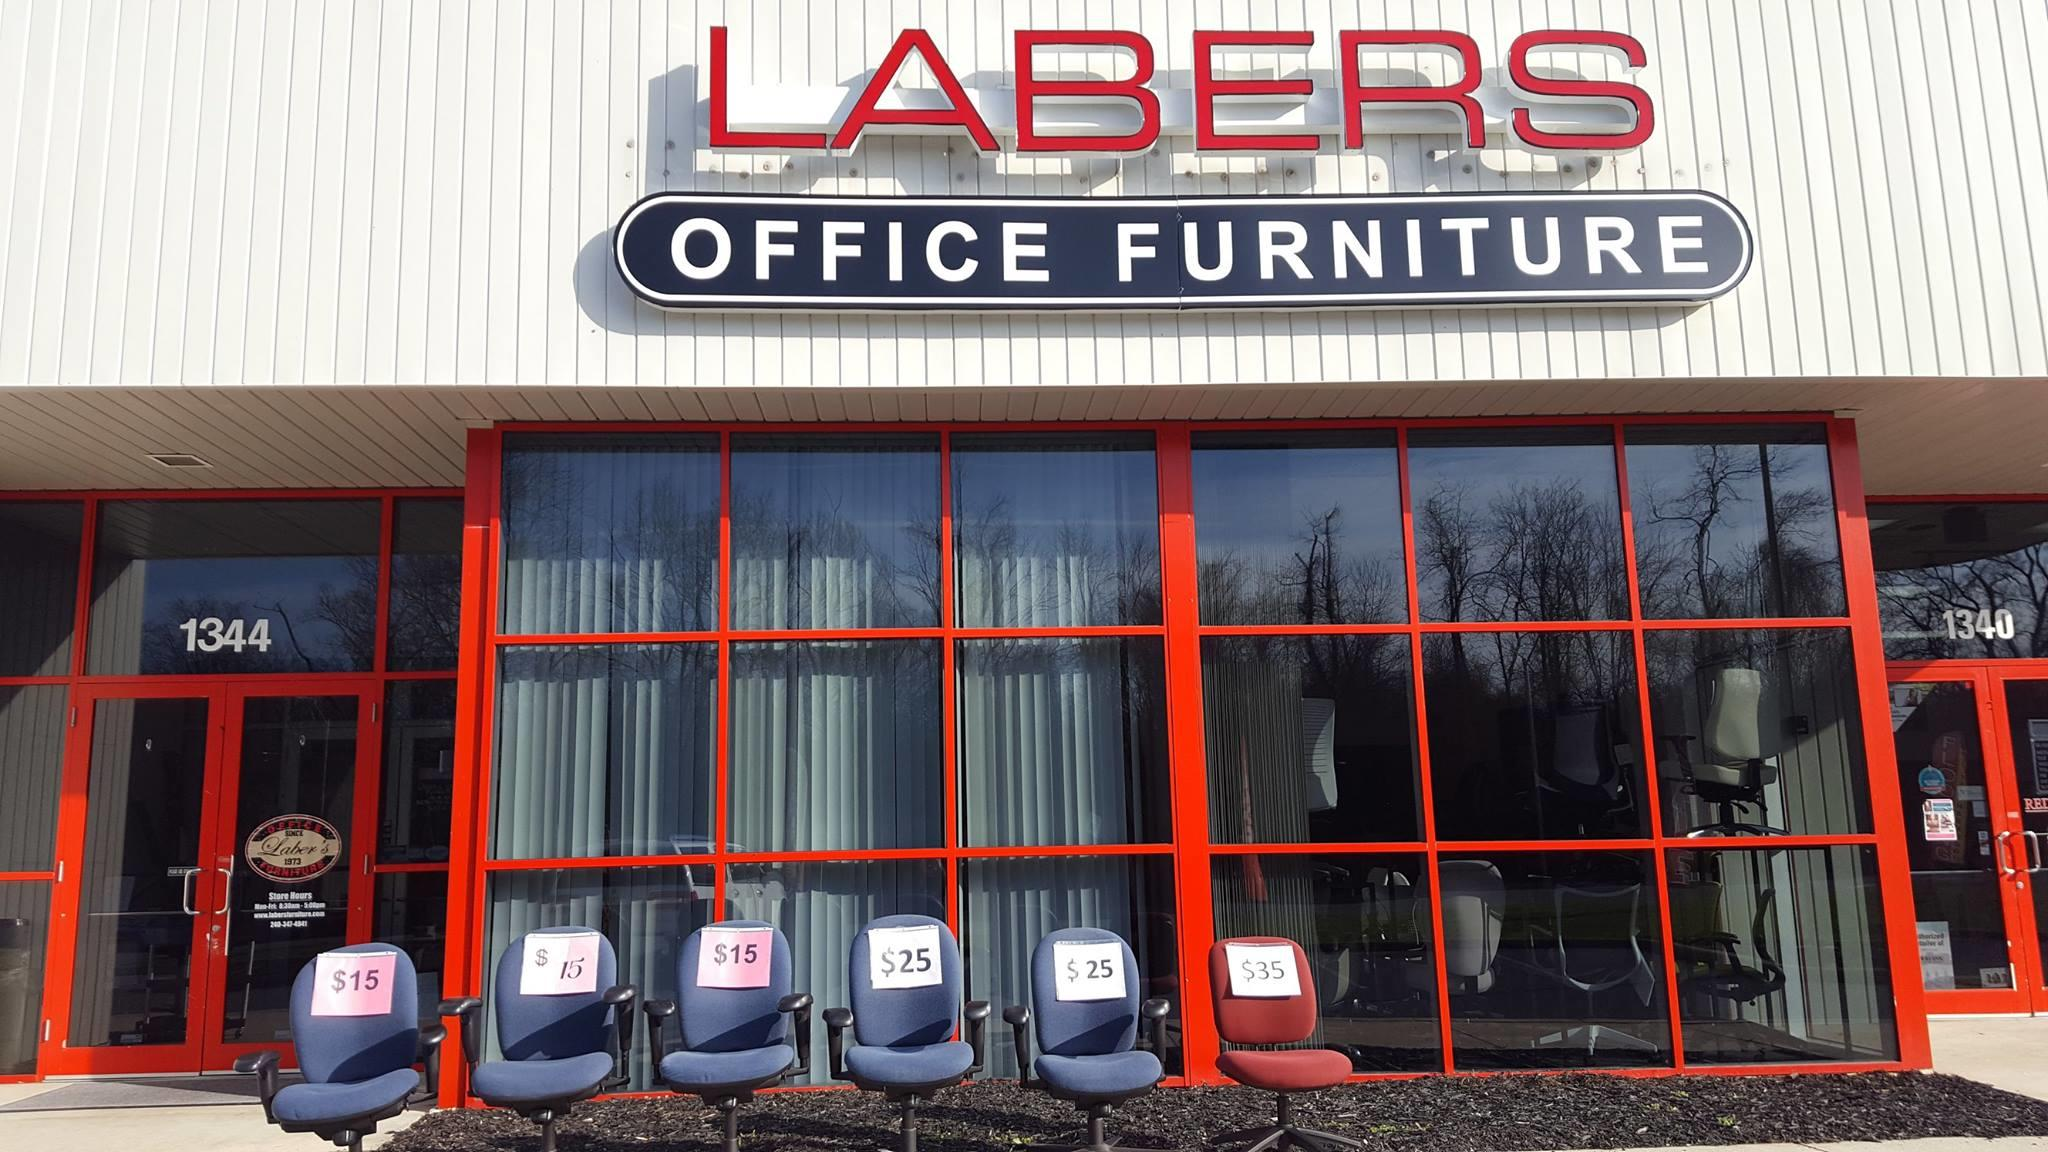 Laber's Office Furniture image 5